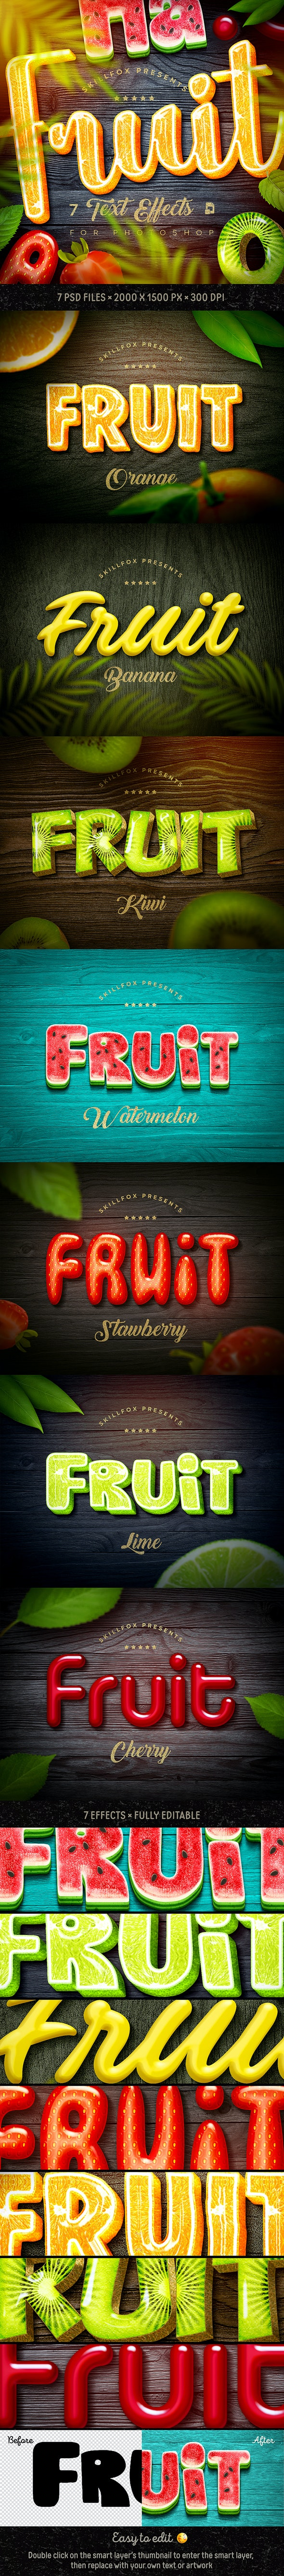 Fruit Text Effects х7 Psd - Text Effects Actions